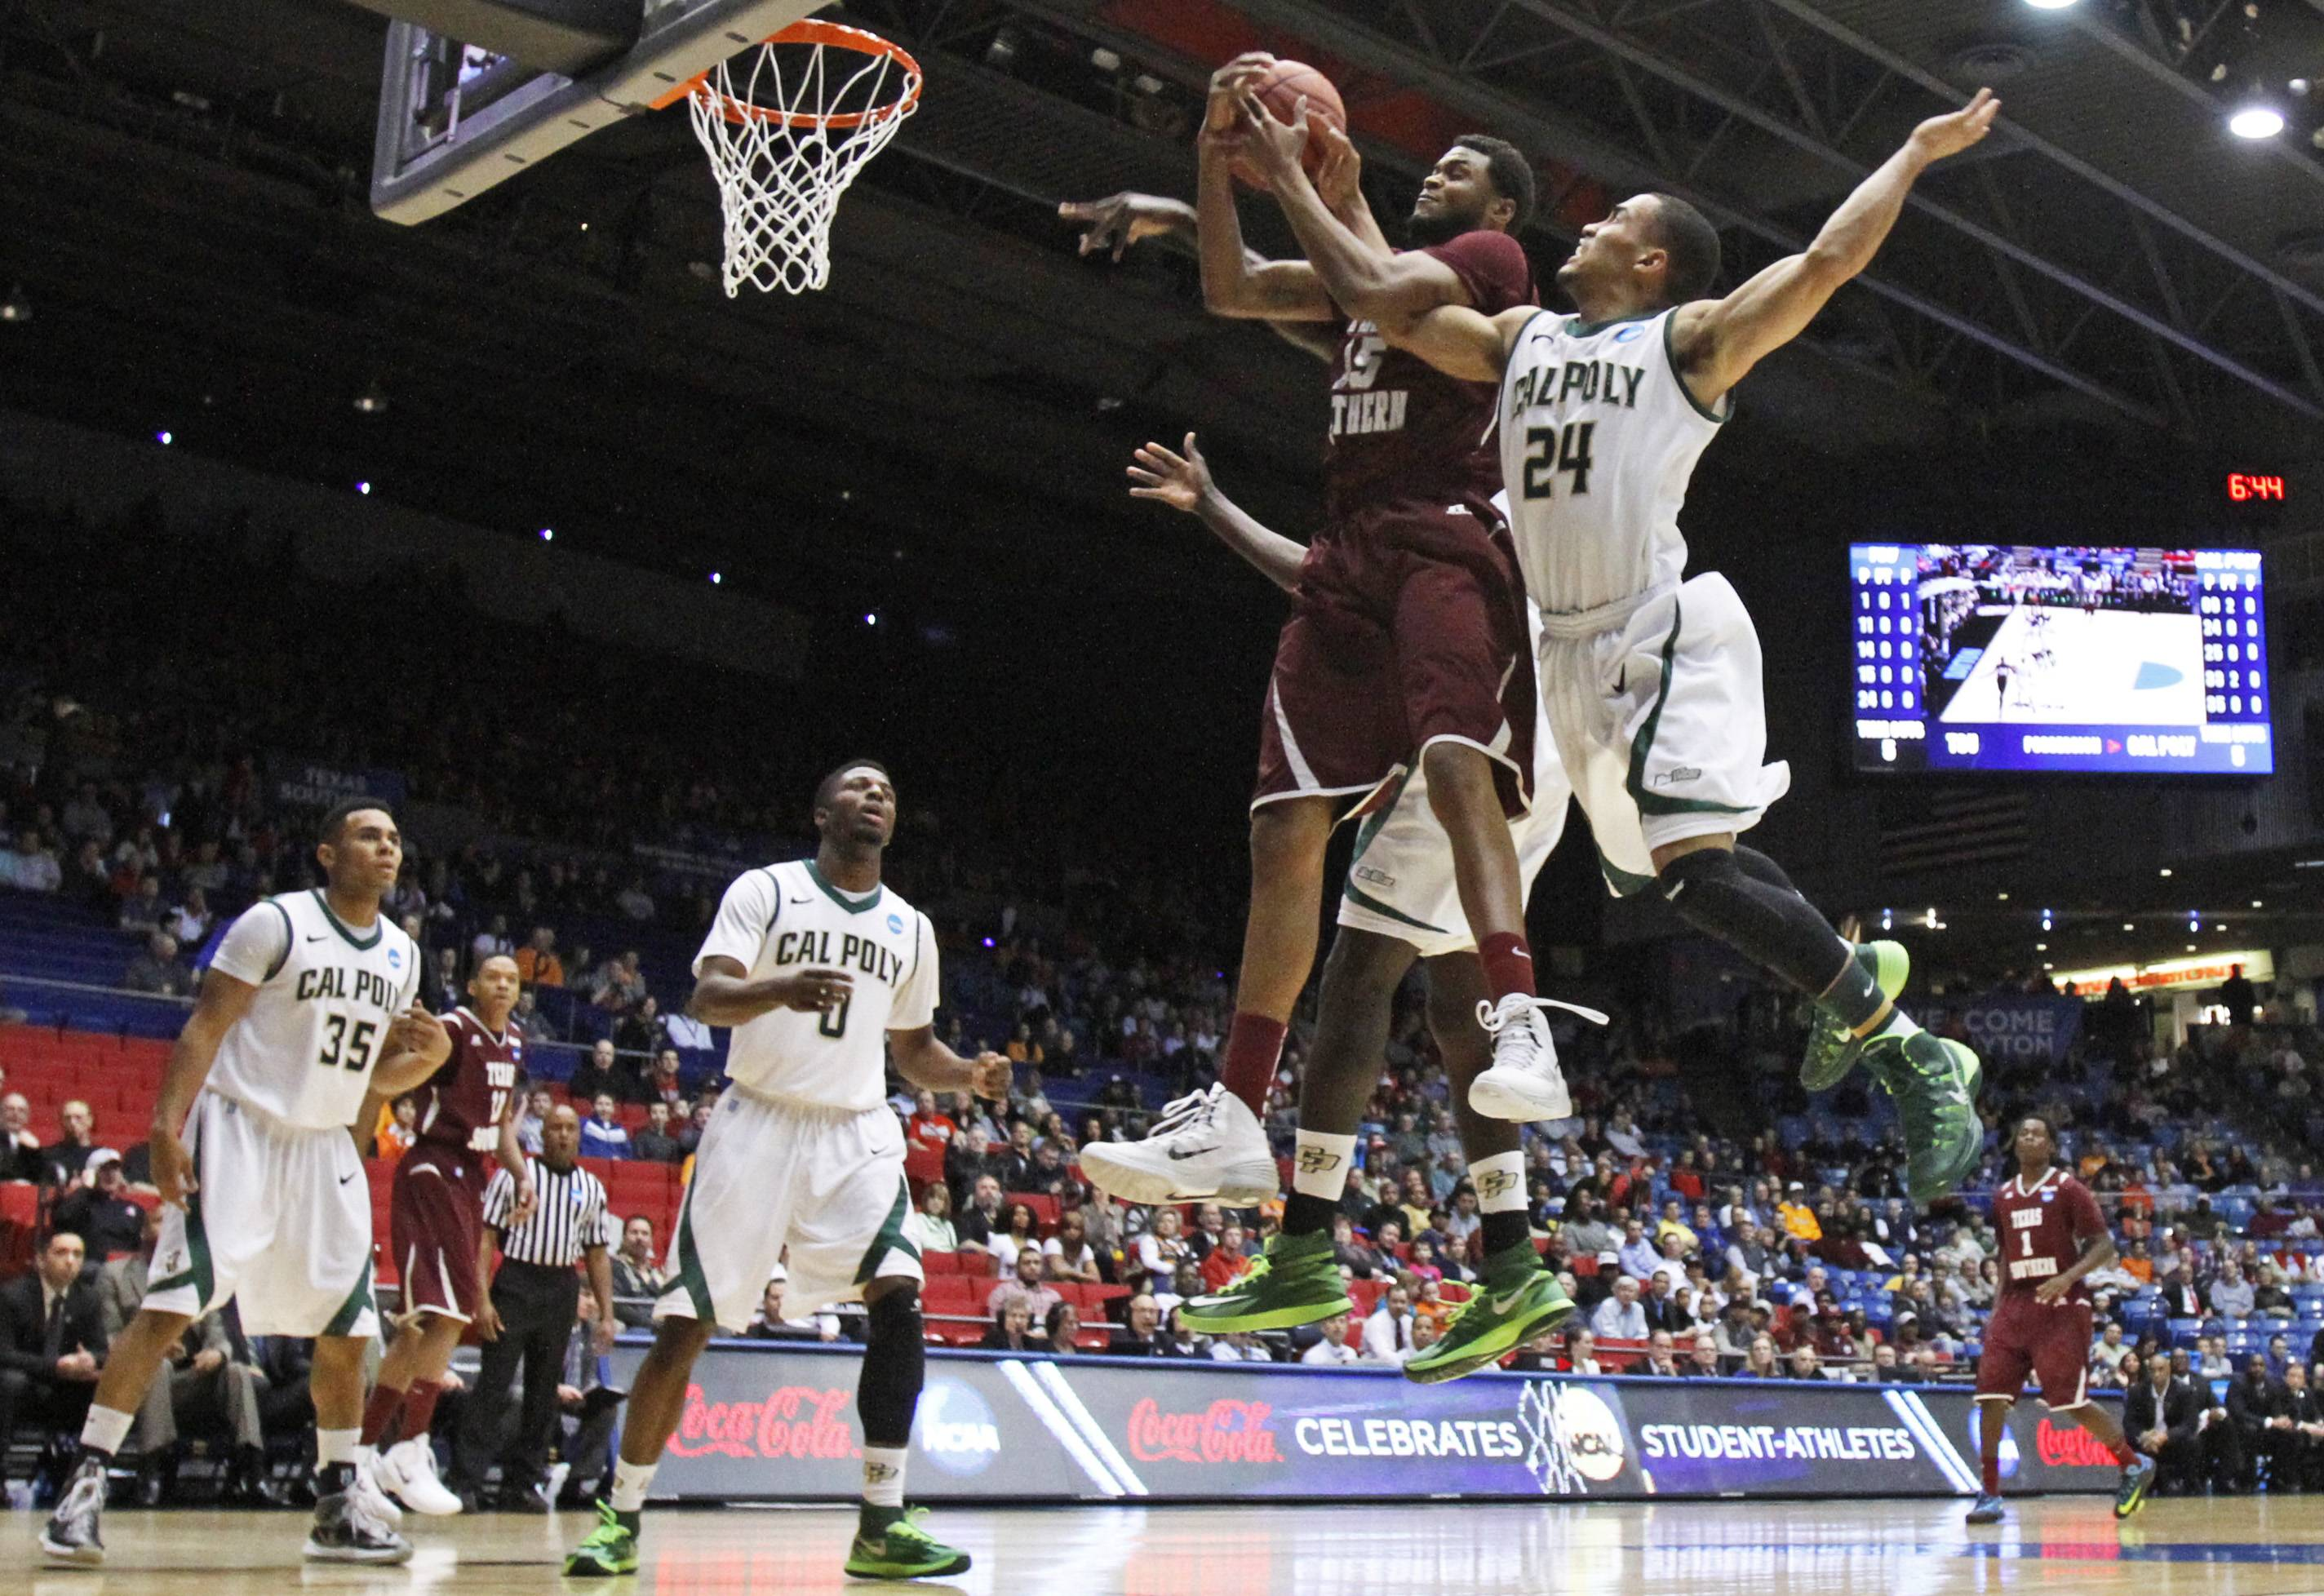 Texas Southern forward D'Angelo Scott (15) goes up for a rebound against Cal Poly guard Jamal Johnson (24) in the first half of a first-round game of the NCAA college basketball tournament on Wednesday in Dayton, Ohio.